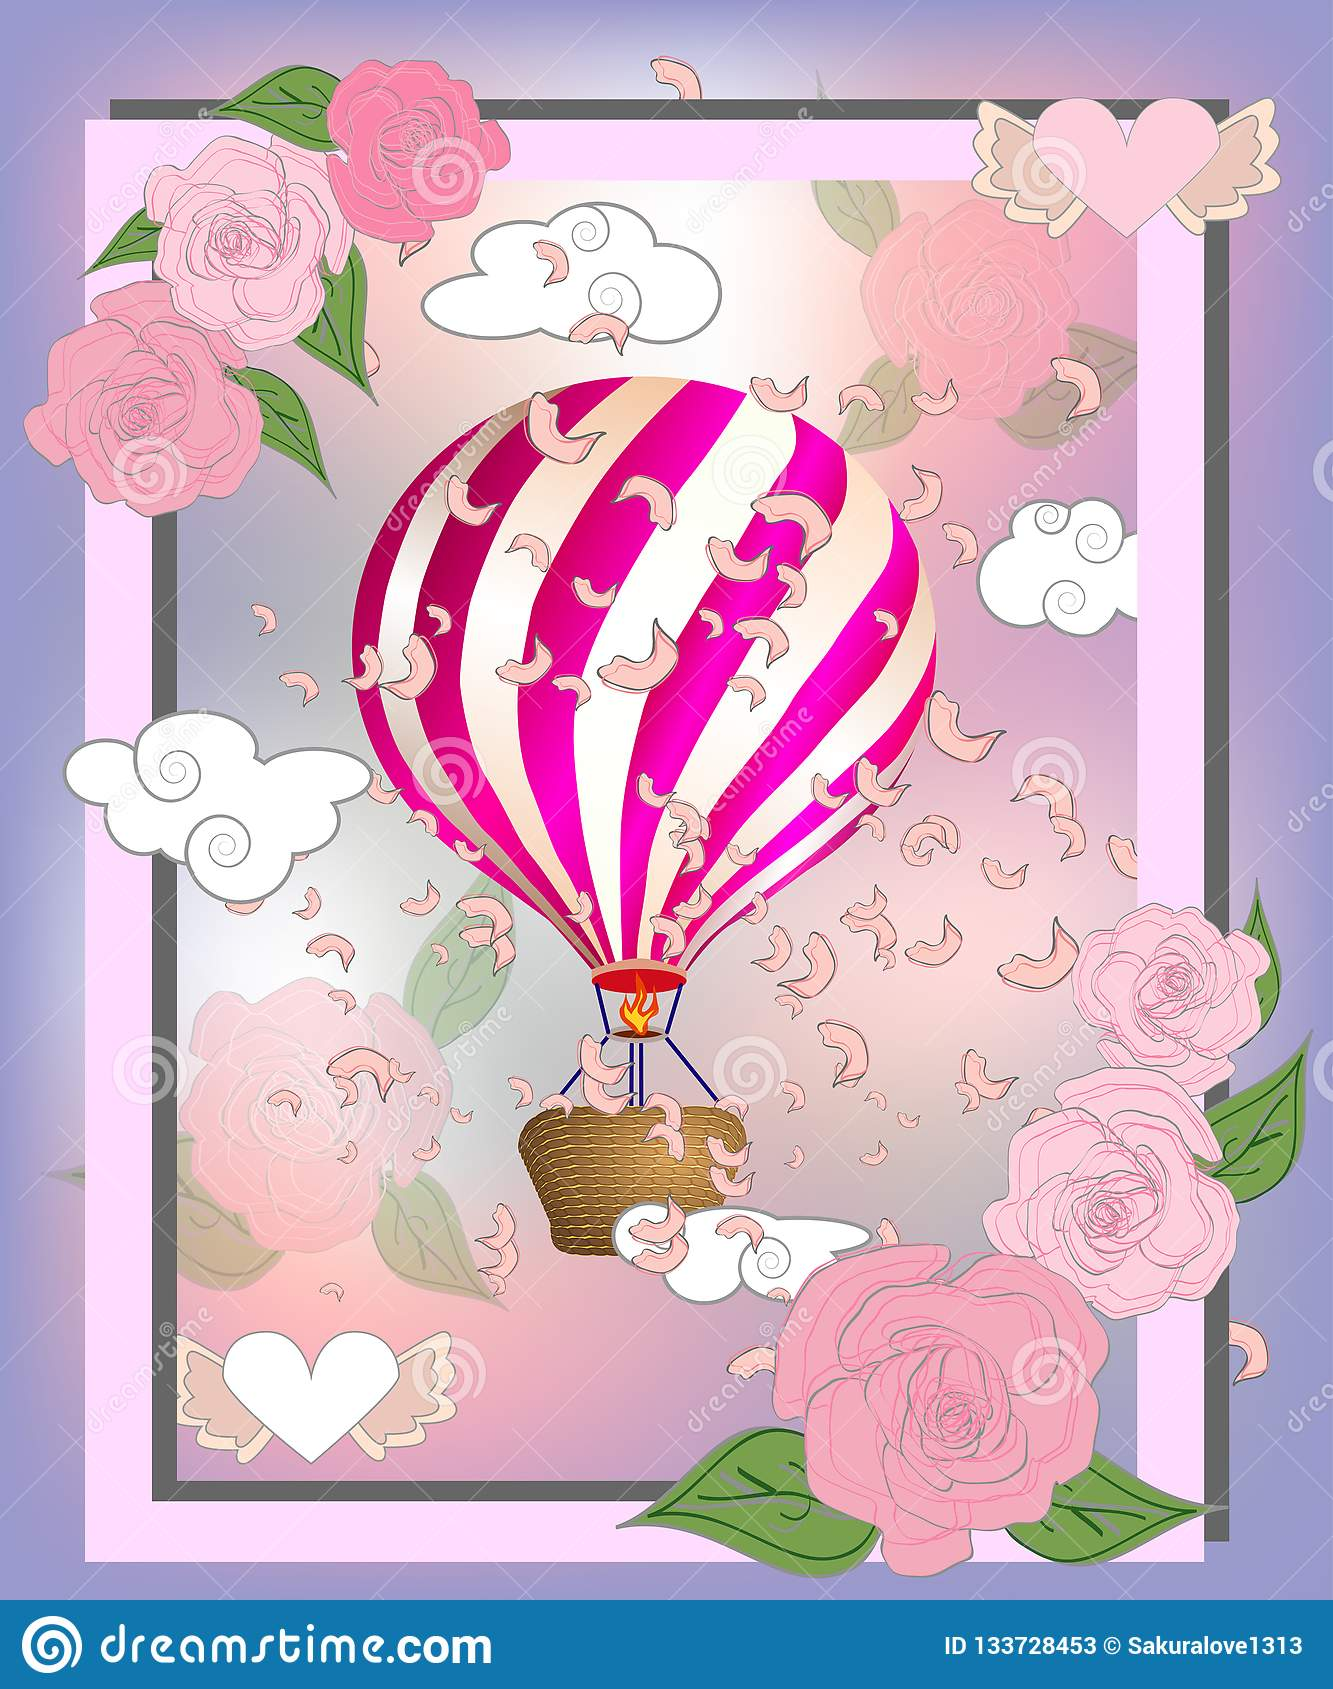 Air balloon with roses in the basket and ribbon with signature I really love you Valentines day illustration